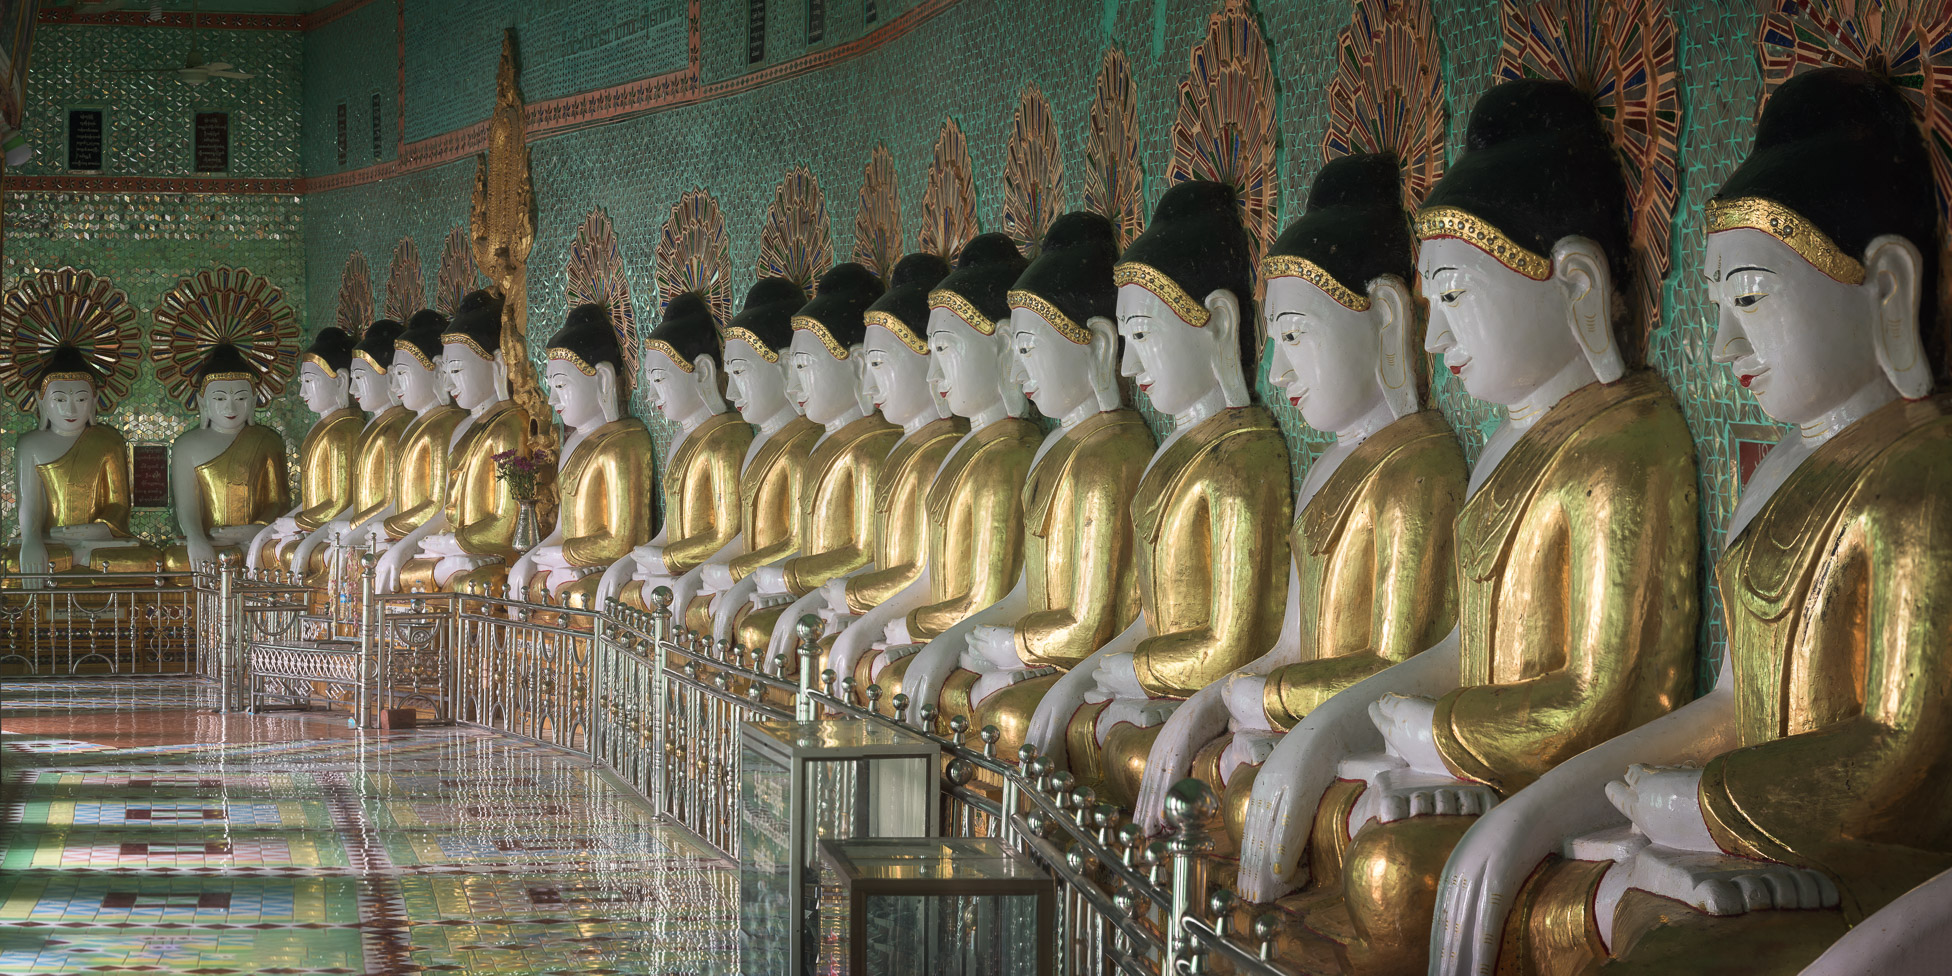 Line of Buddhas in U Min Thonze Caves, Sagaing Hill, Myanmar